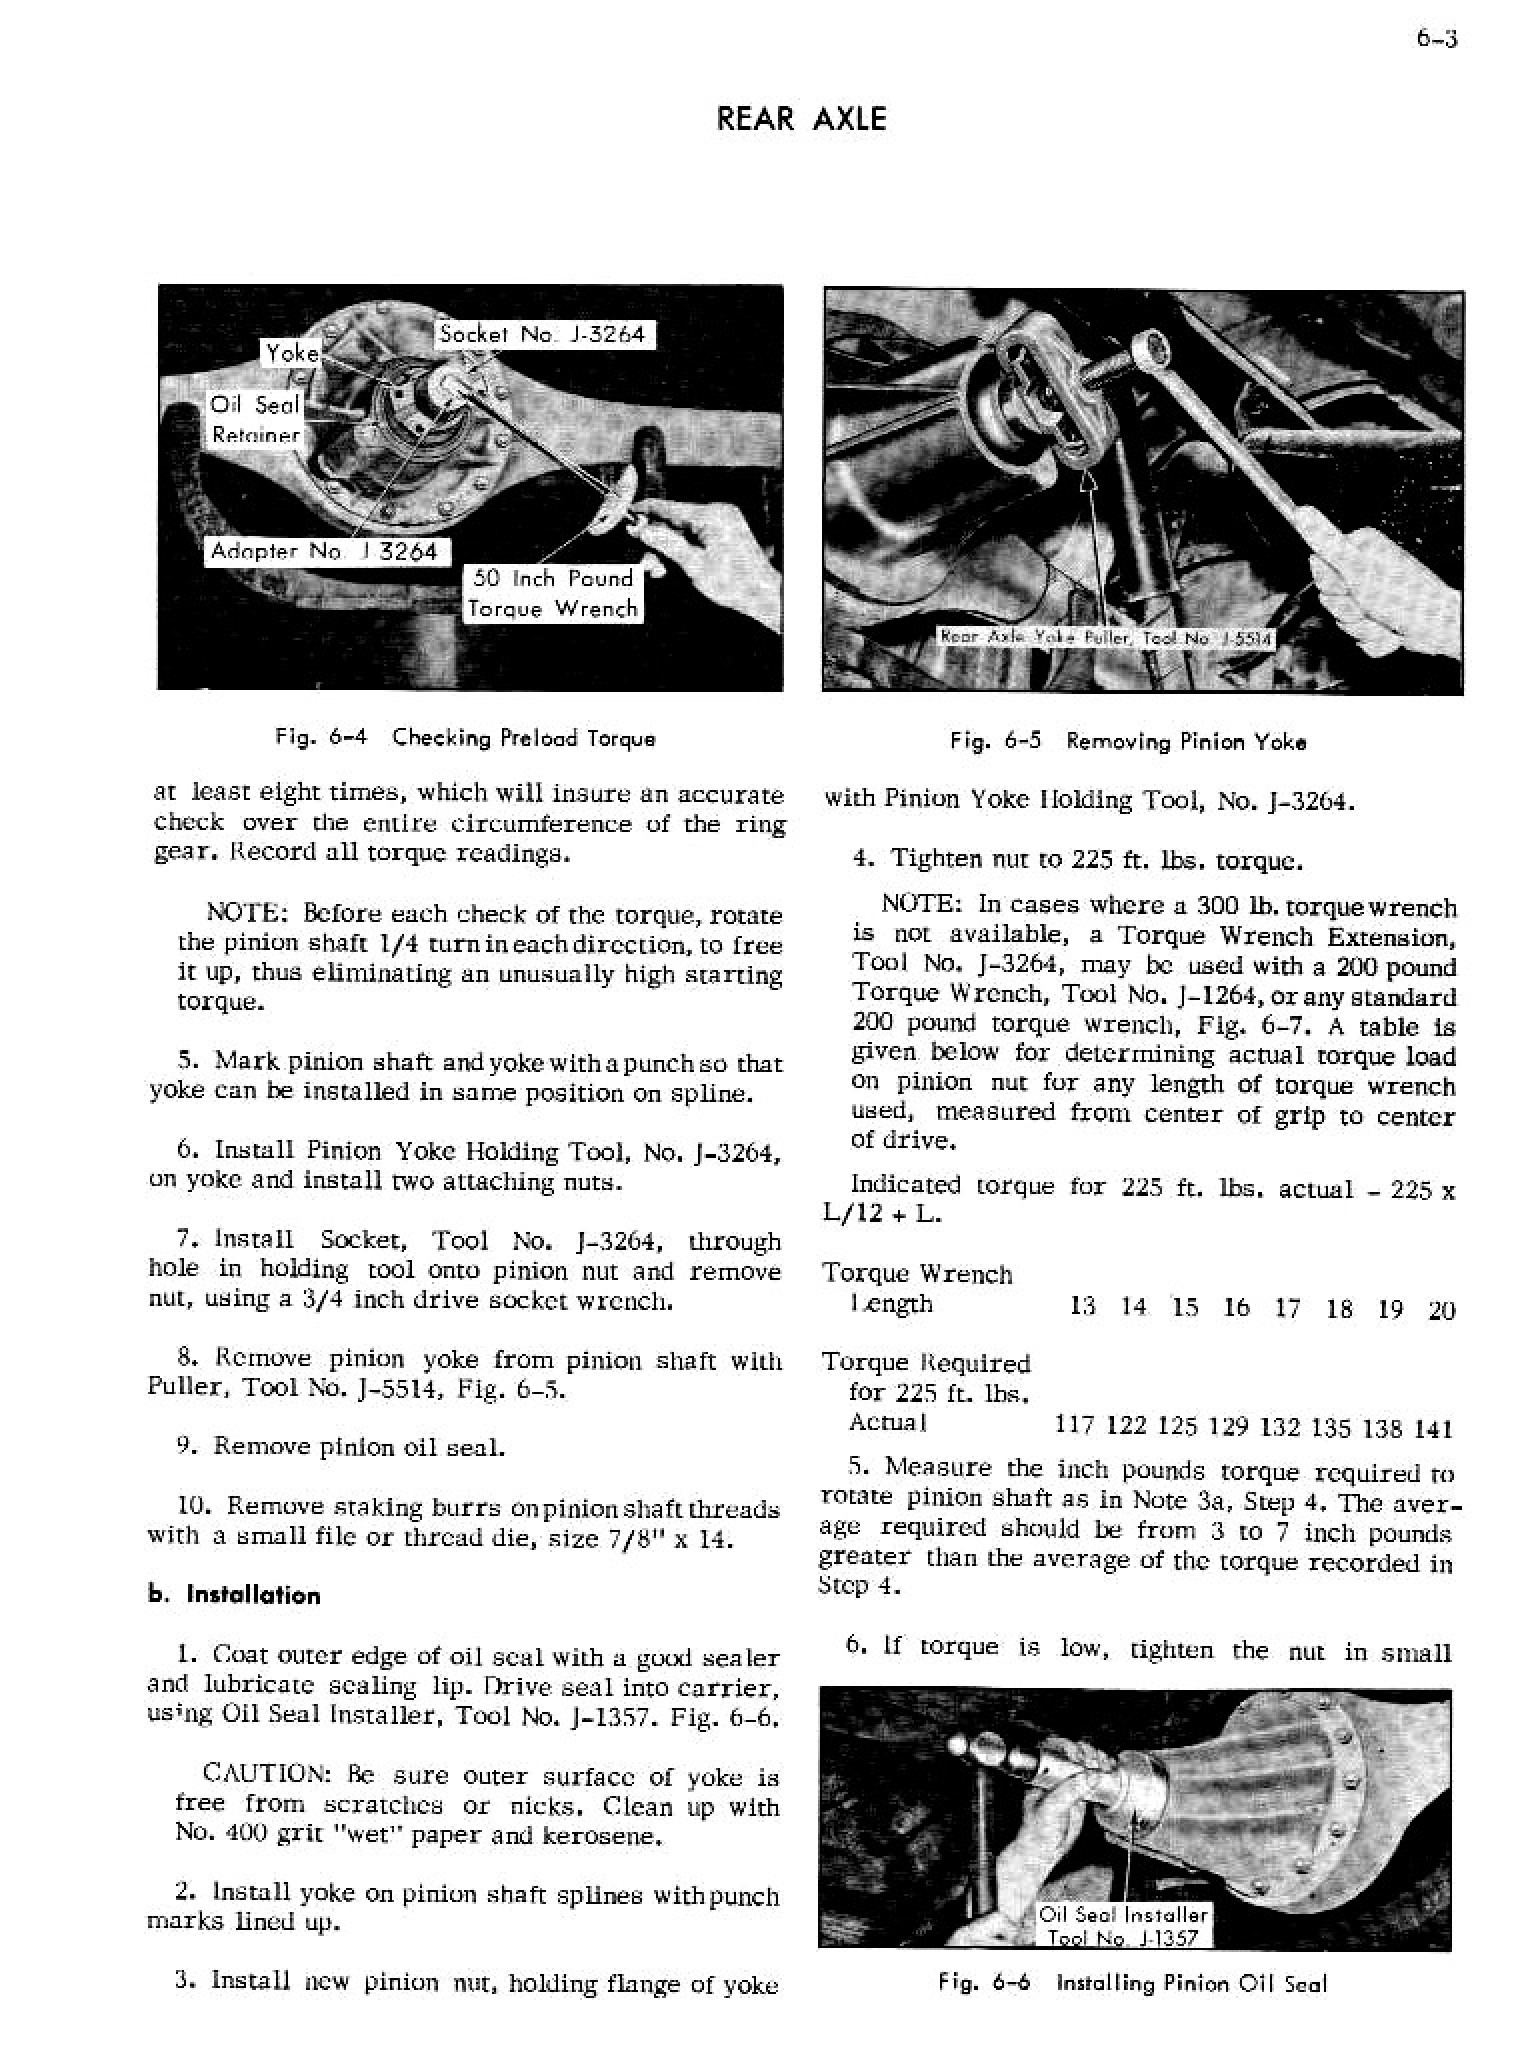 1956 Cadillac Shop Manual- Rear Axle Page 3 of 10